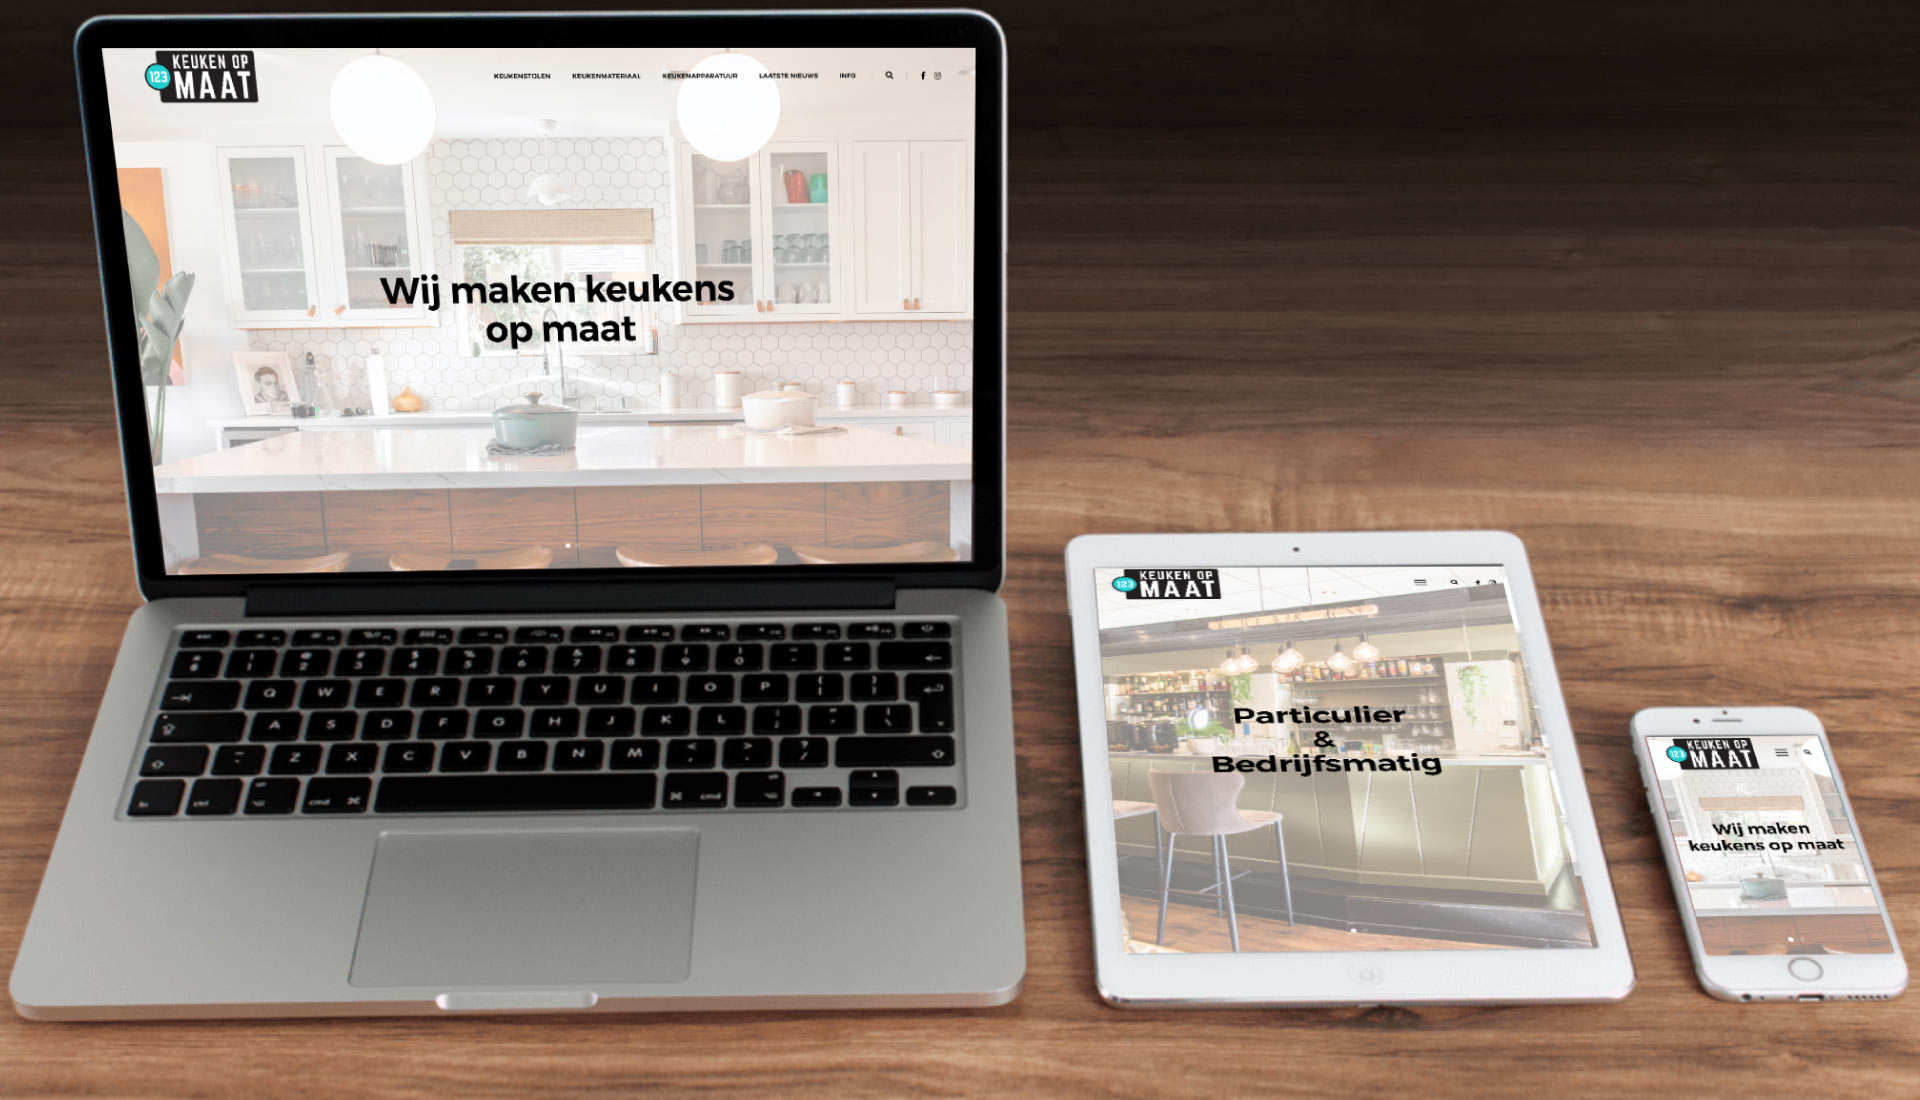 123keukenopmaat-website-online-responsive